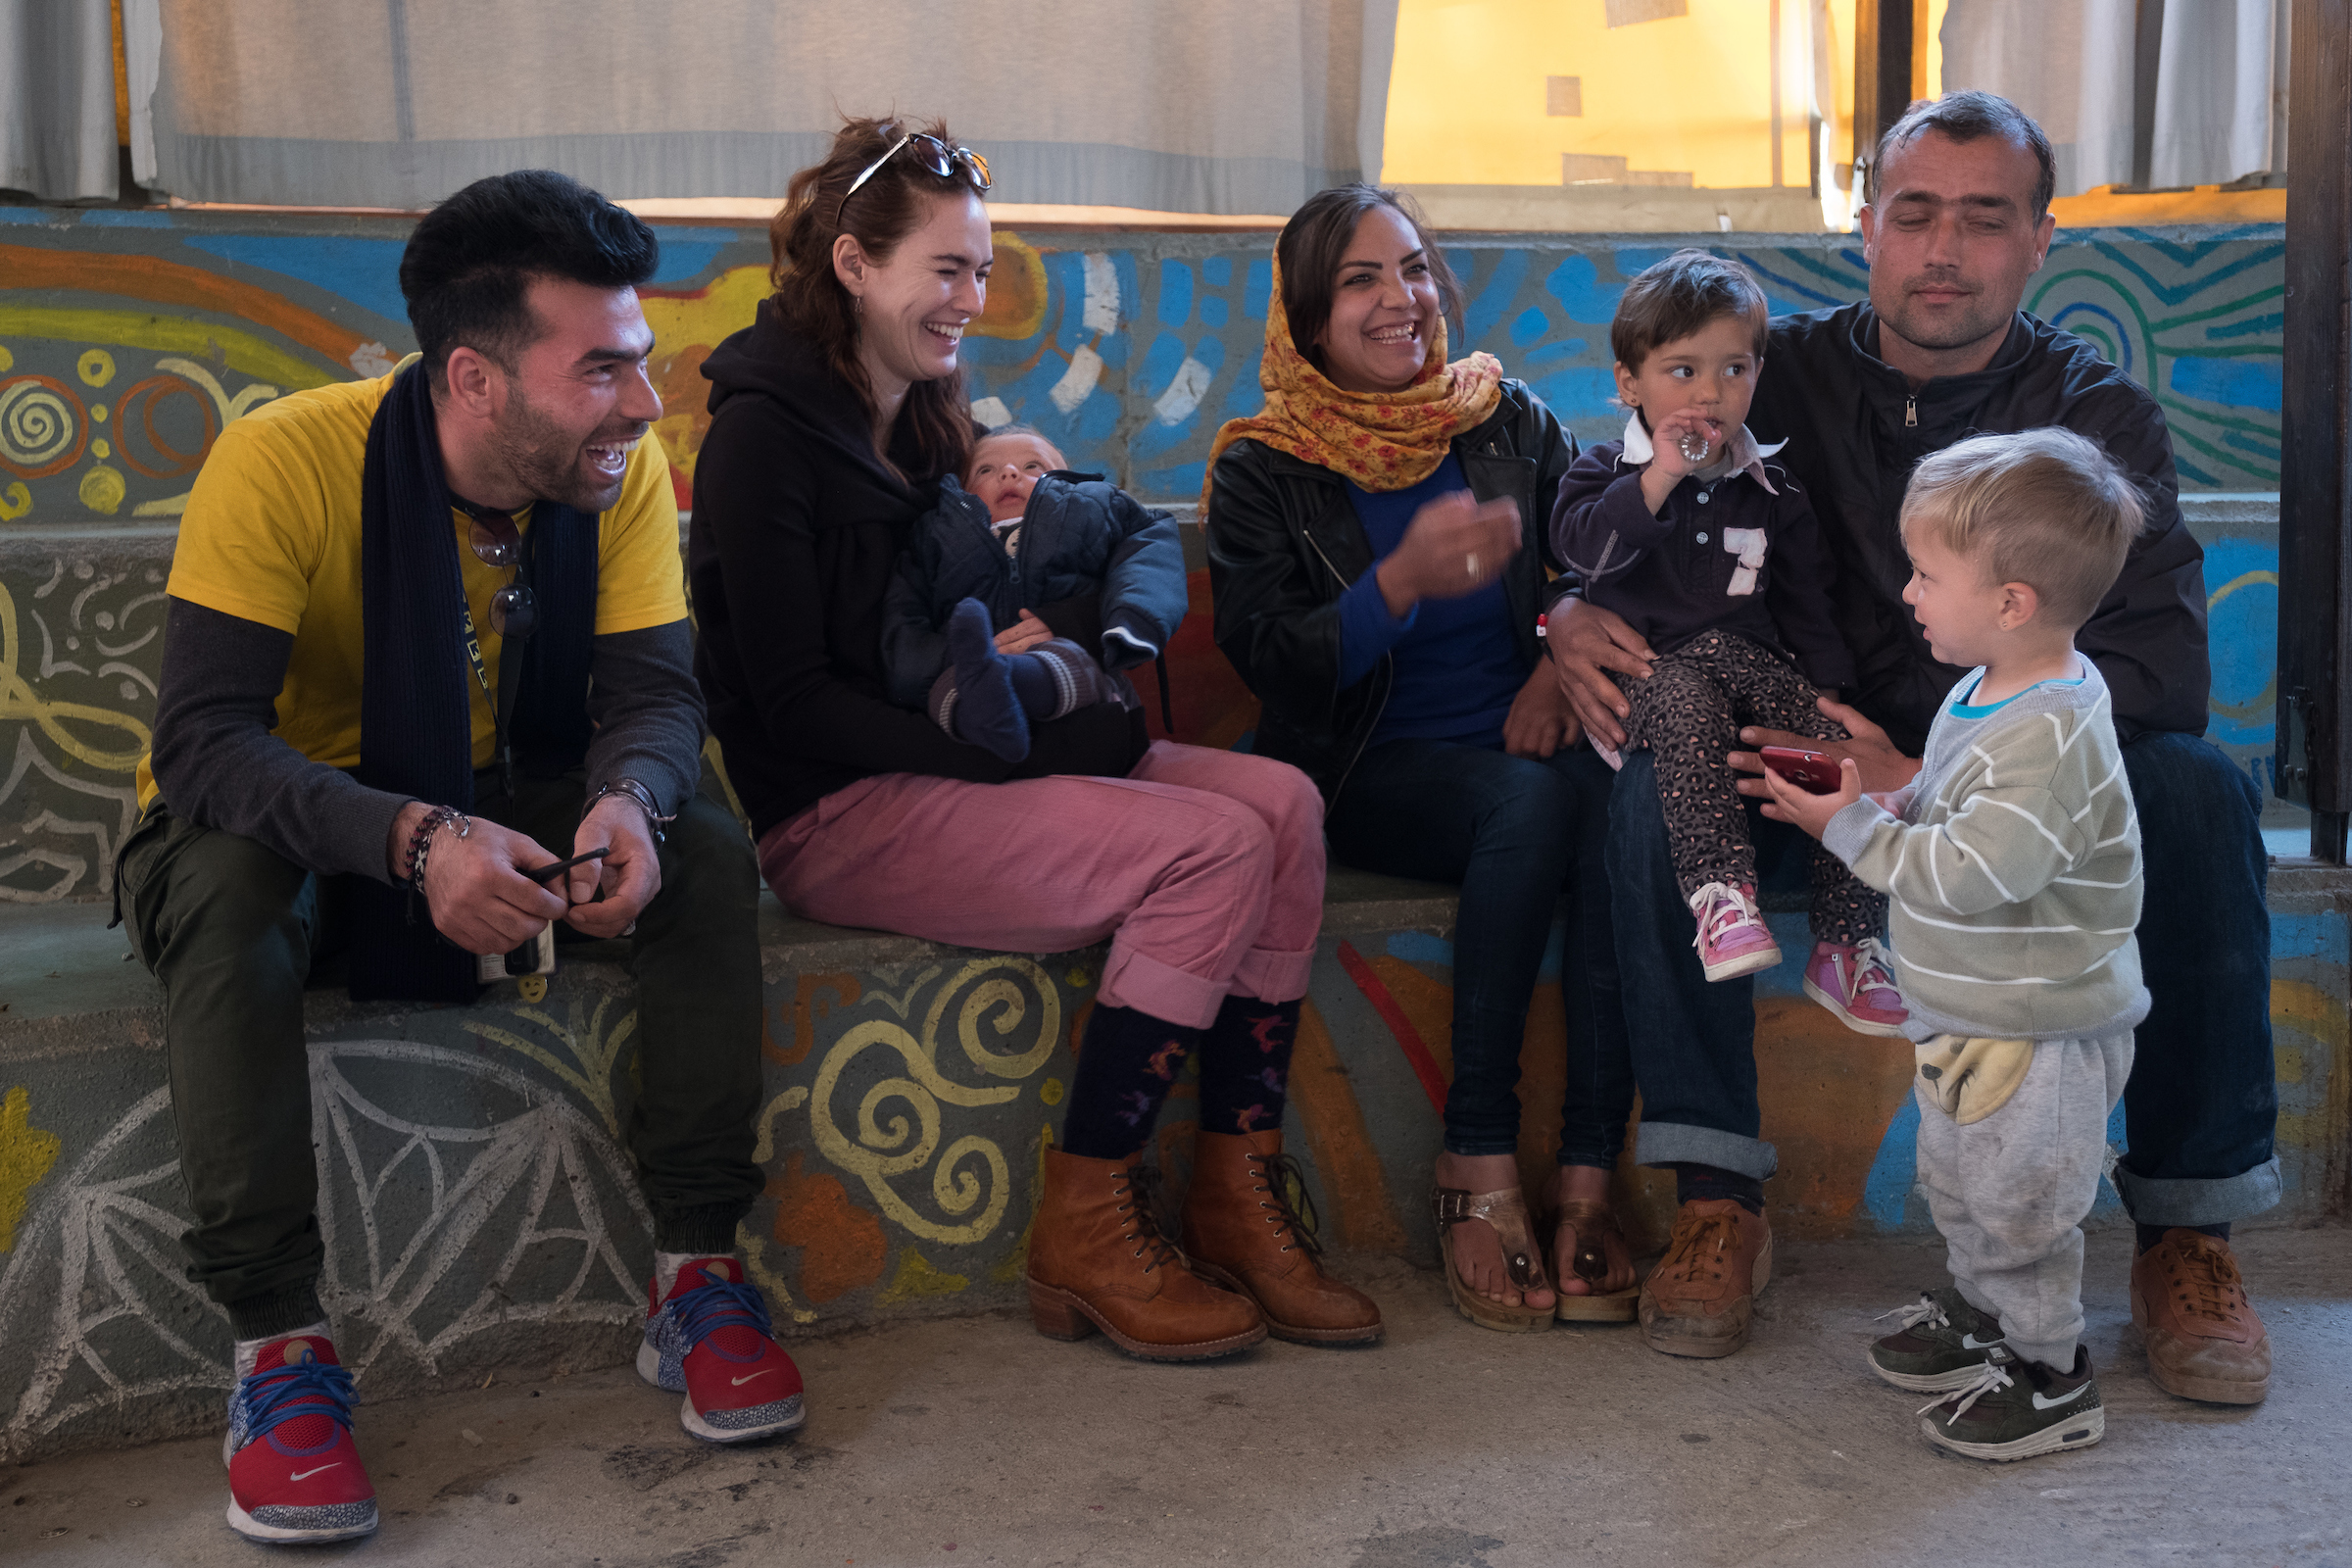 Refugee family in Greece visited by actress Lena Headey